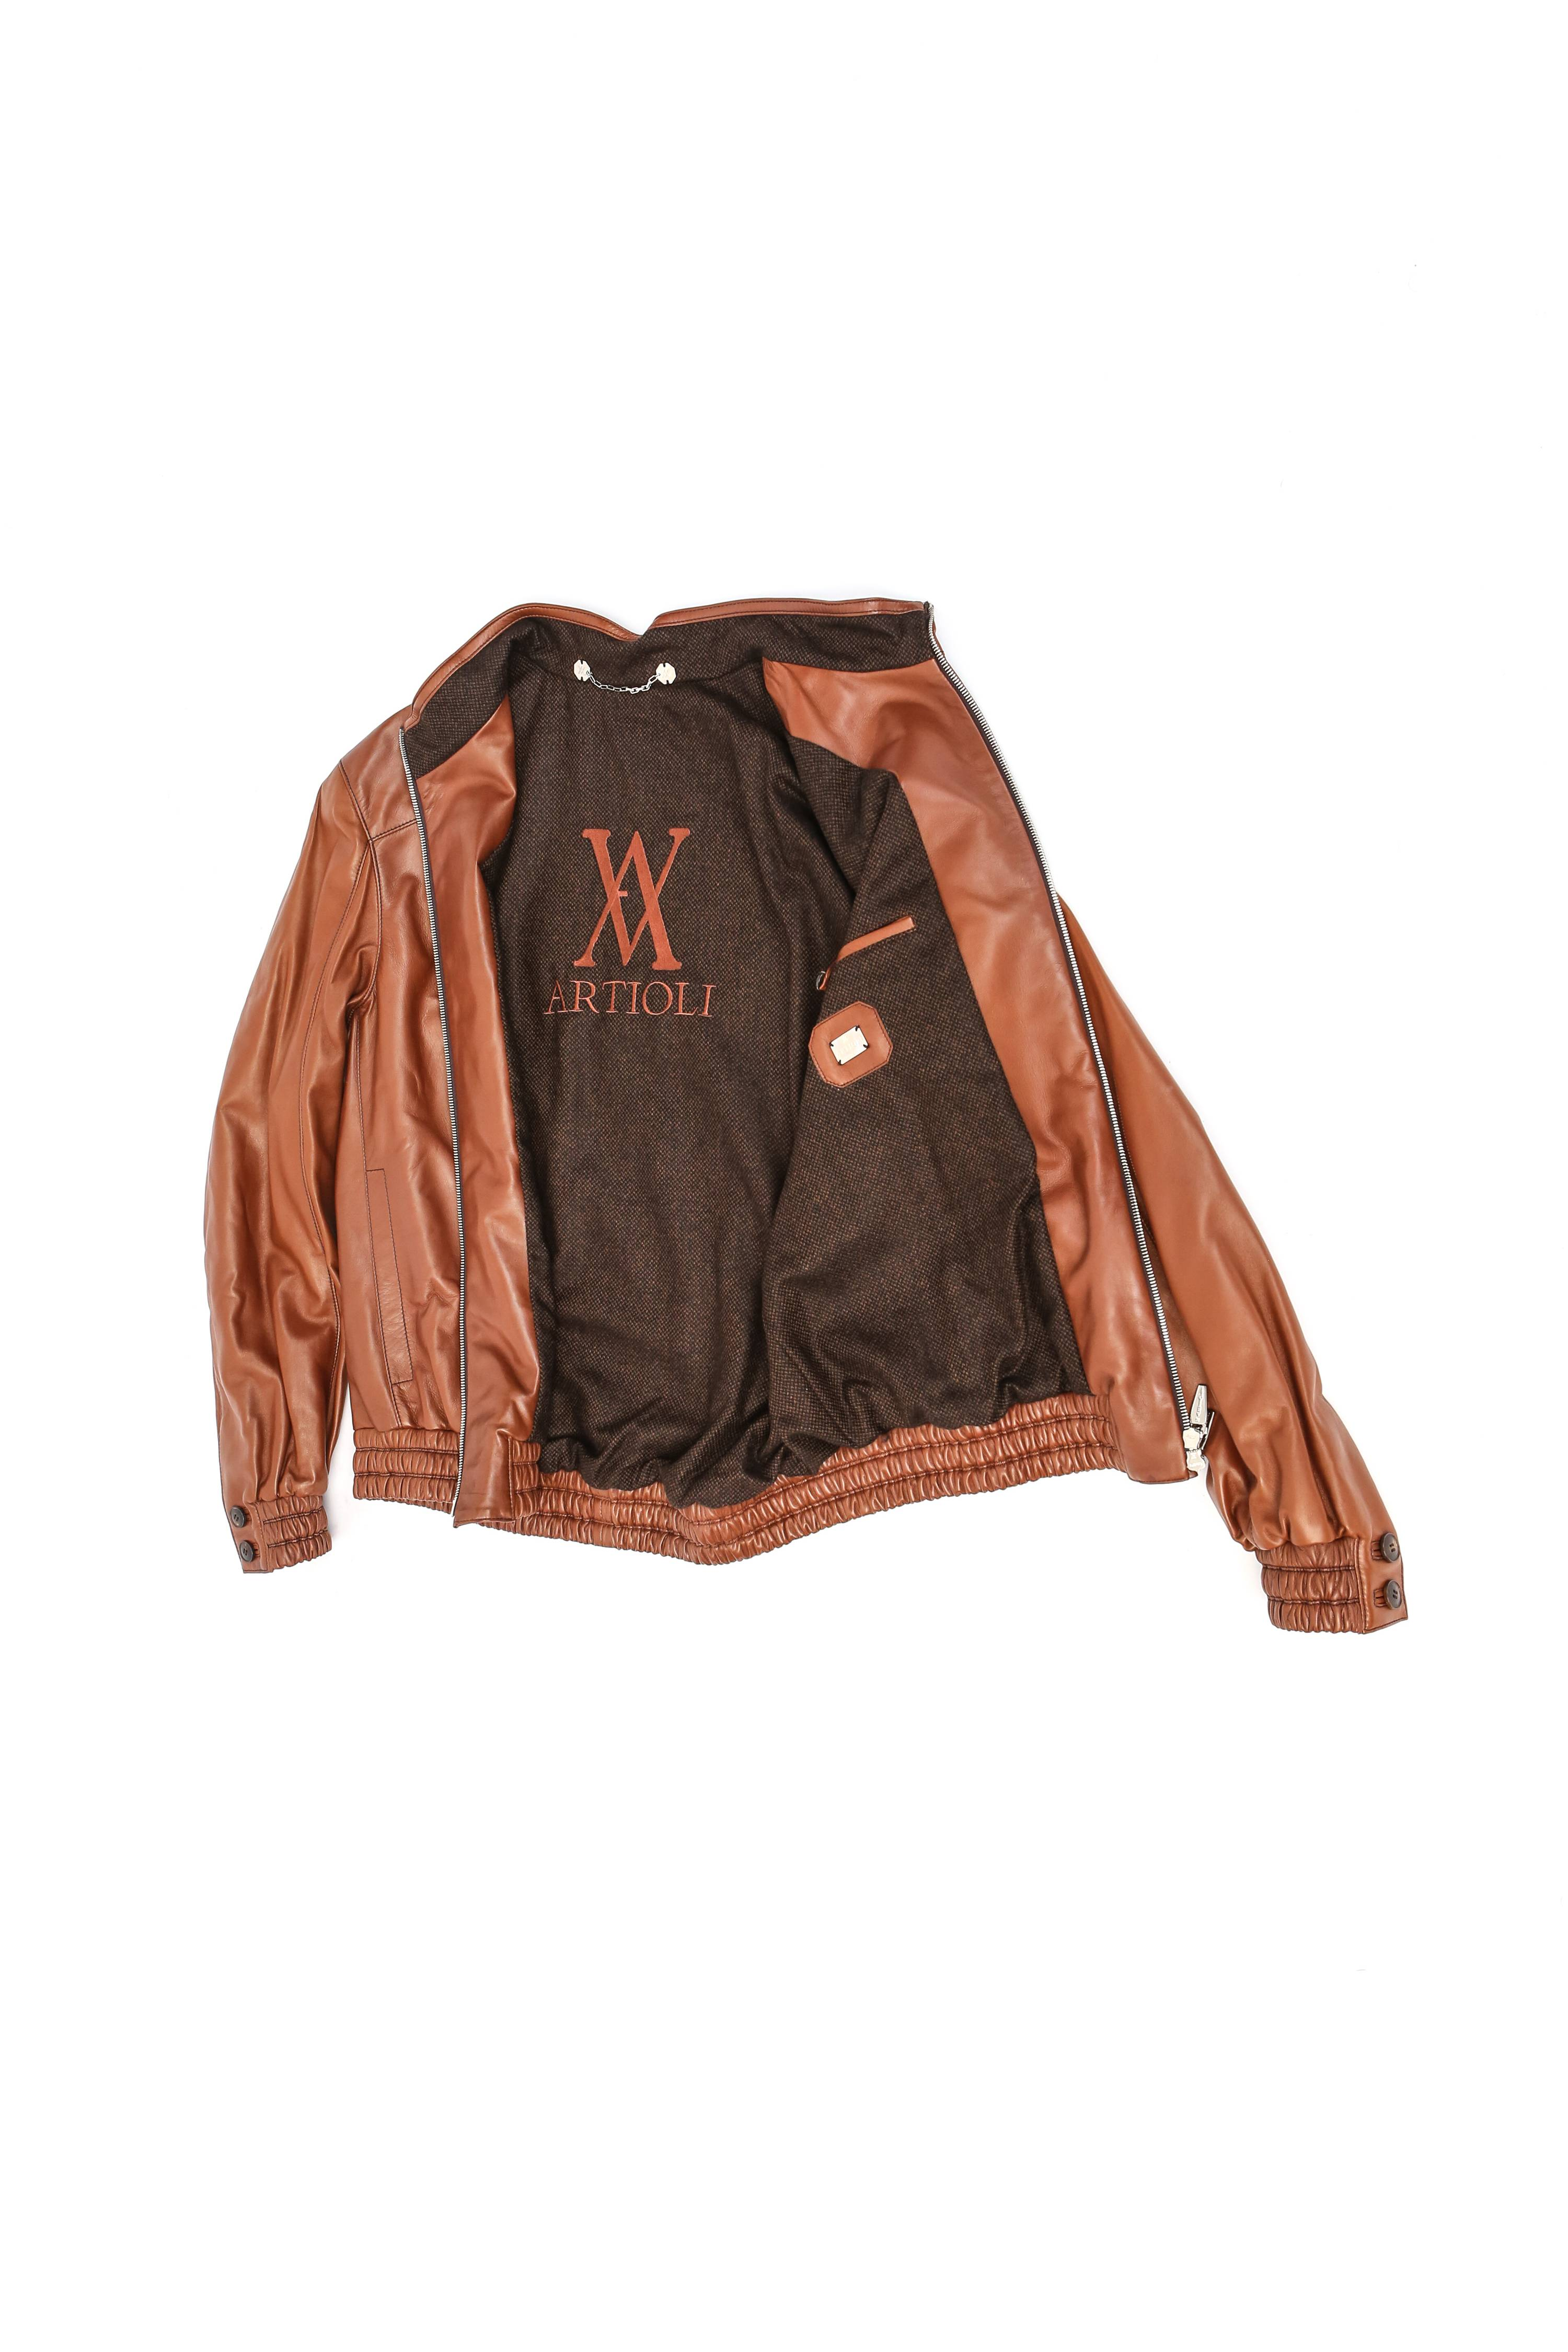 5 good reasons to buy a genuine leather jacket